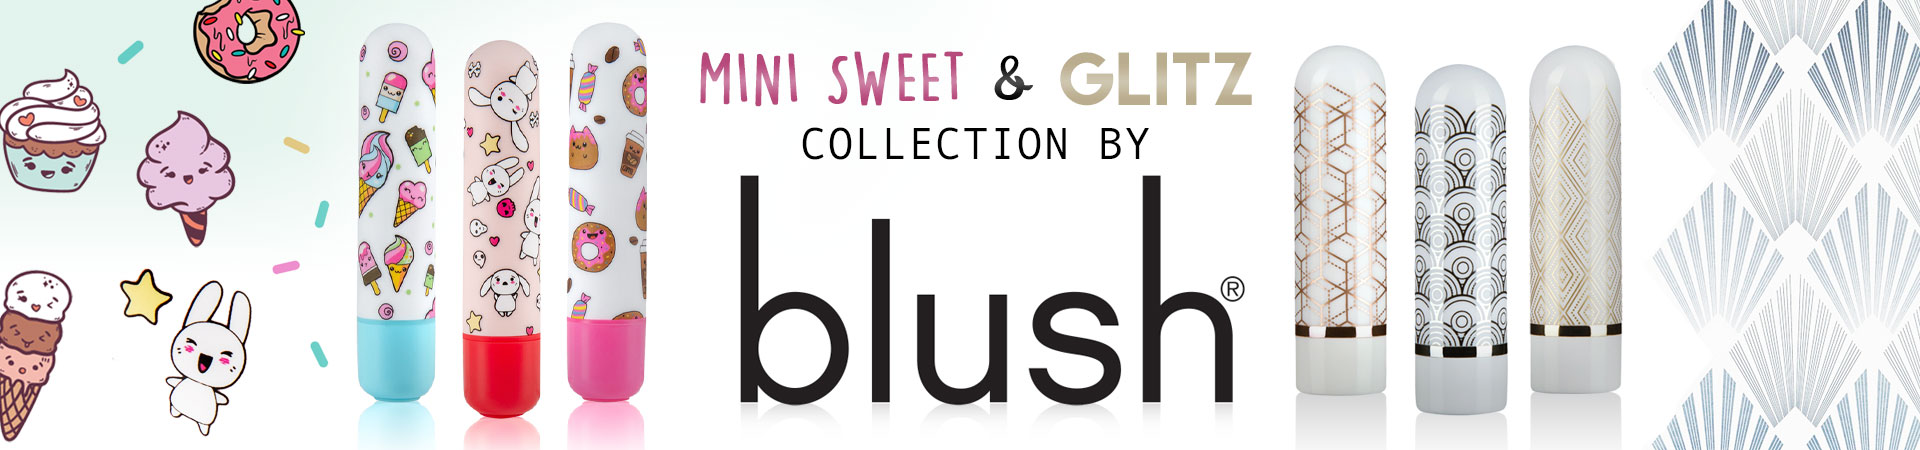 New The Collection Glitzy & The Collection Mini Sweet Vibes From Blush